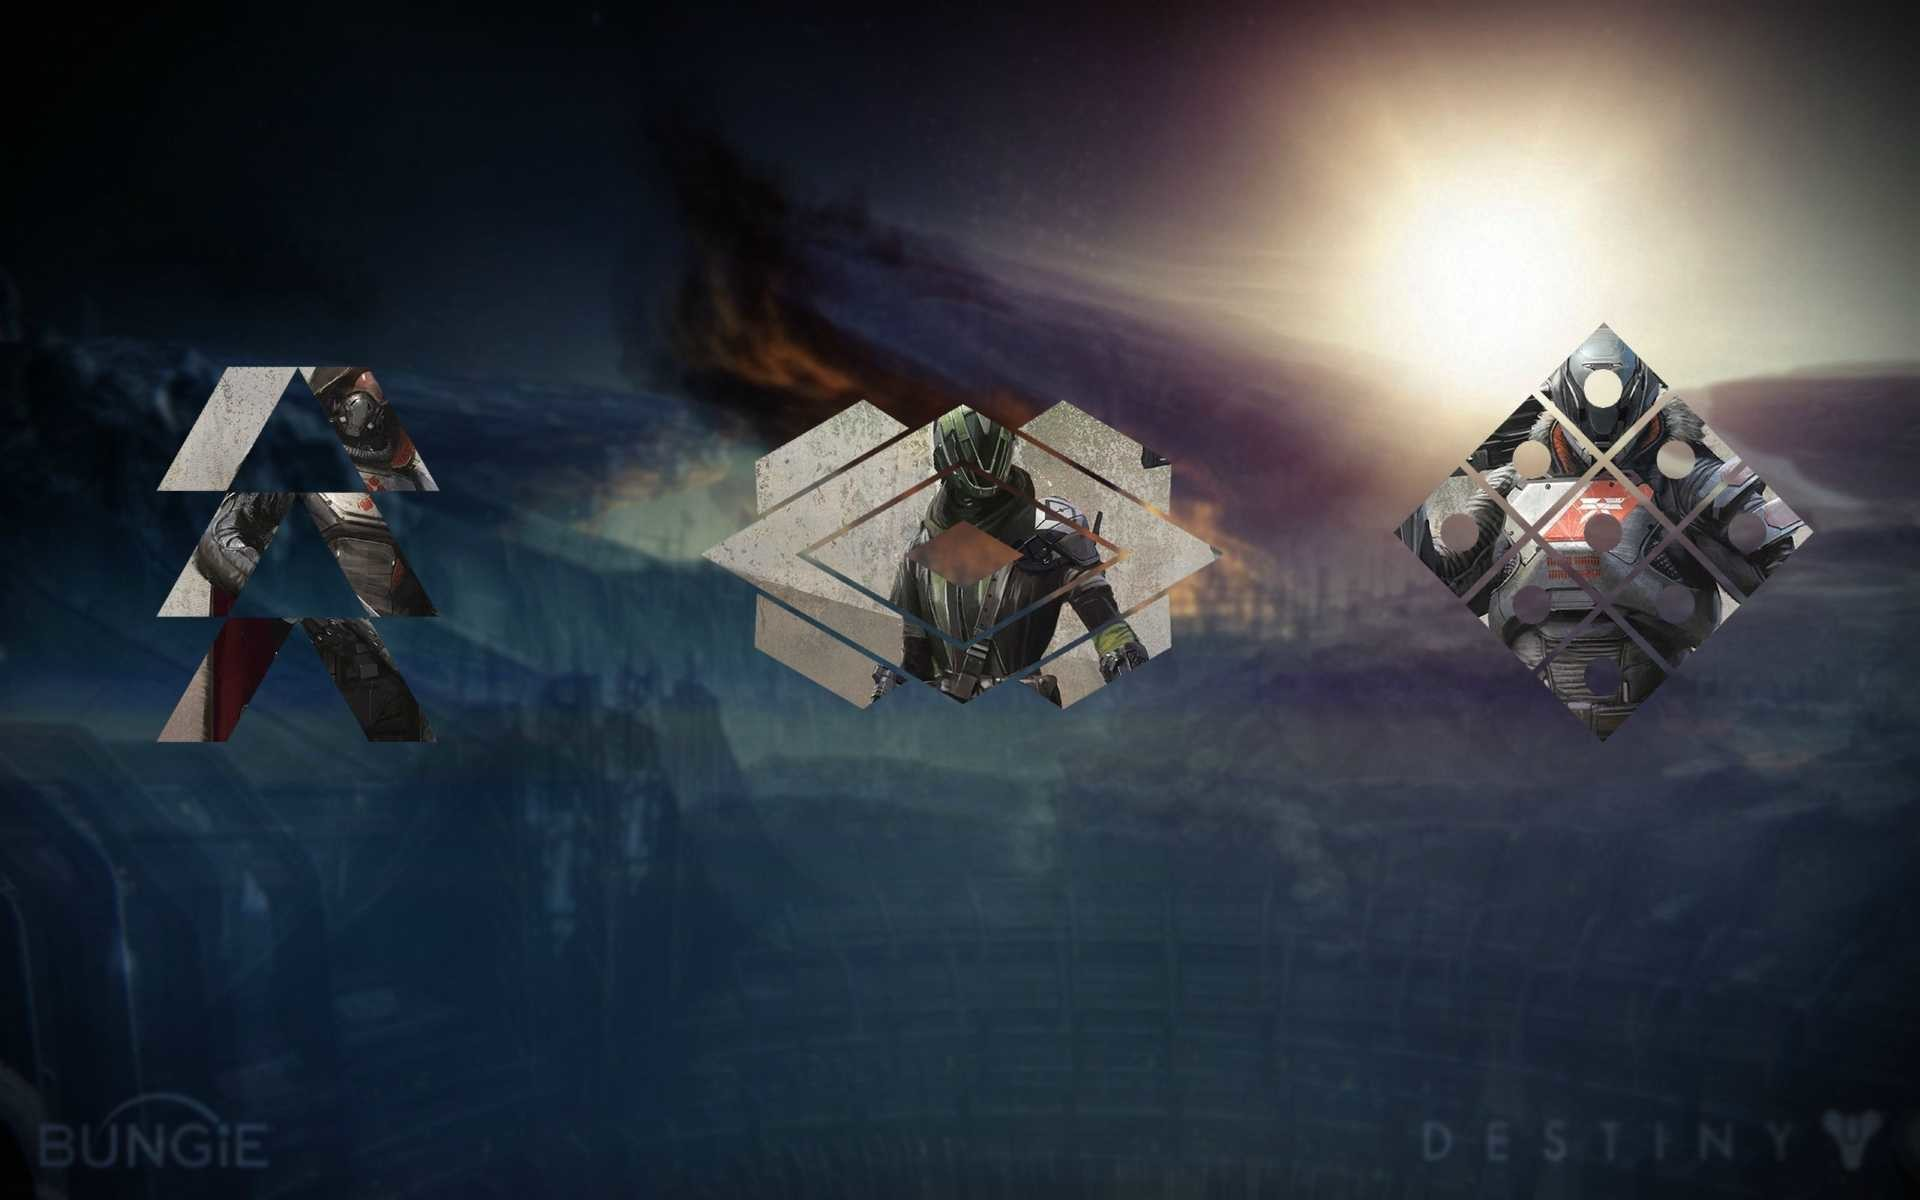 Res: 1920x1200, Destiny Hd Wallpaper Ideas And Amazing Wallpapers For Picture